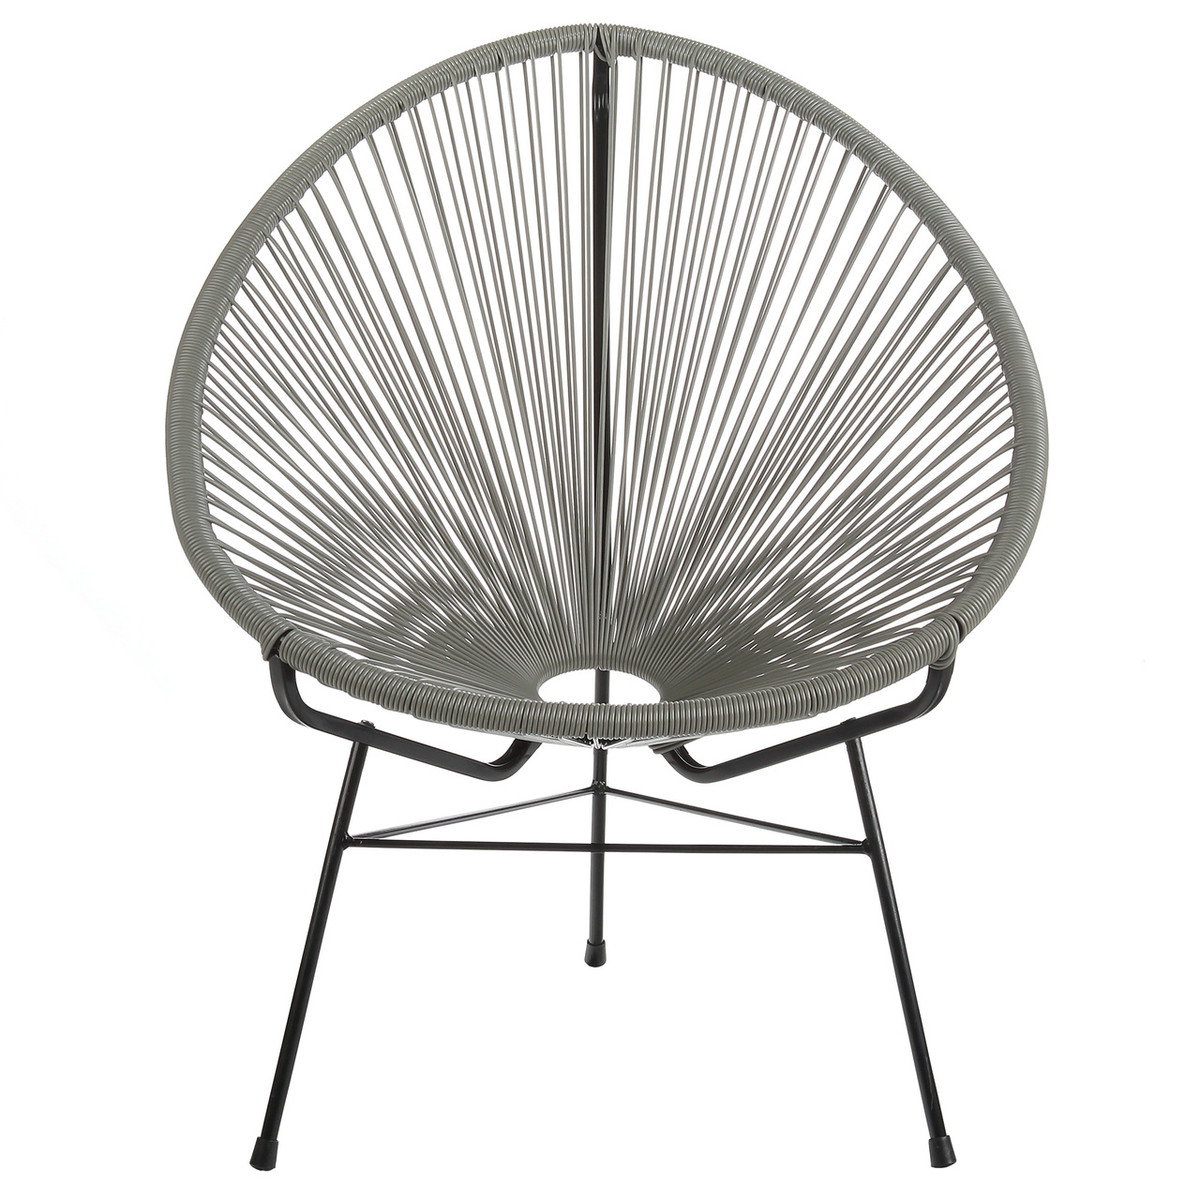 Acapulco Lounge Chair Grey Wire Basket Patio Chair